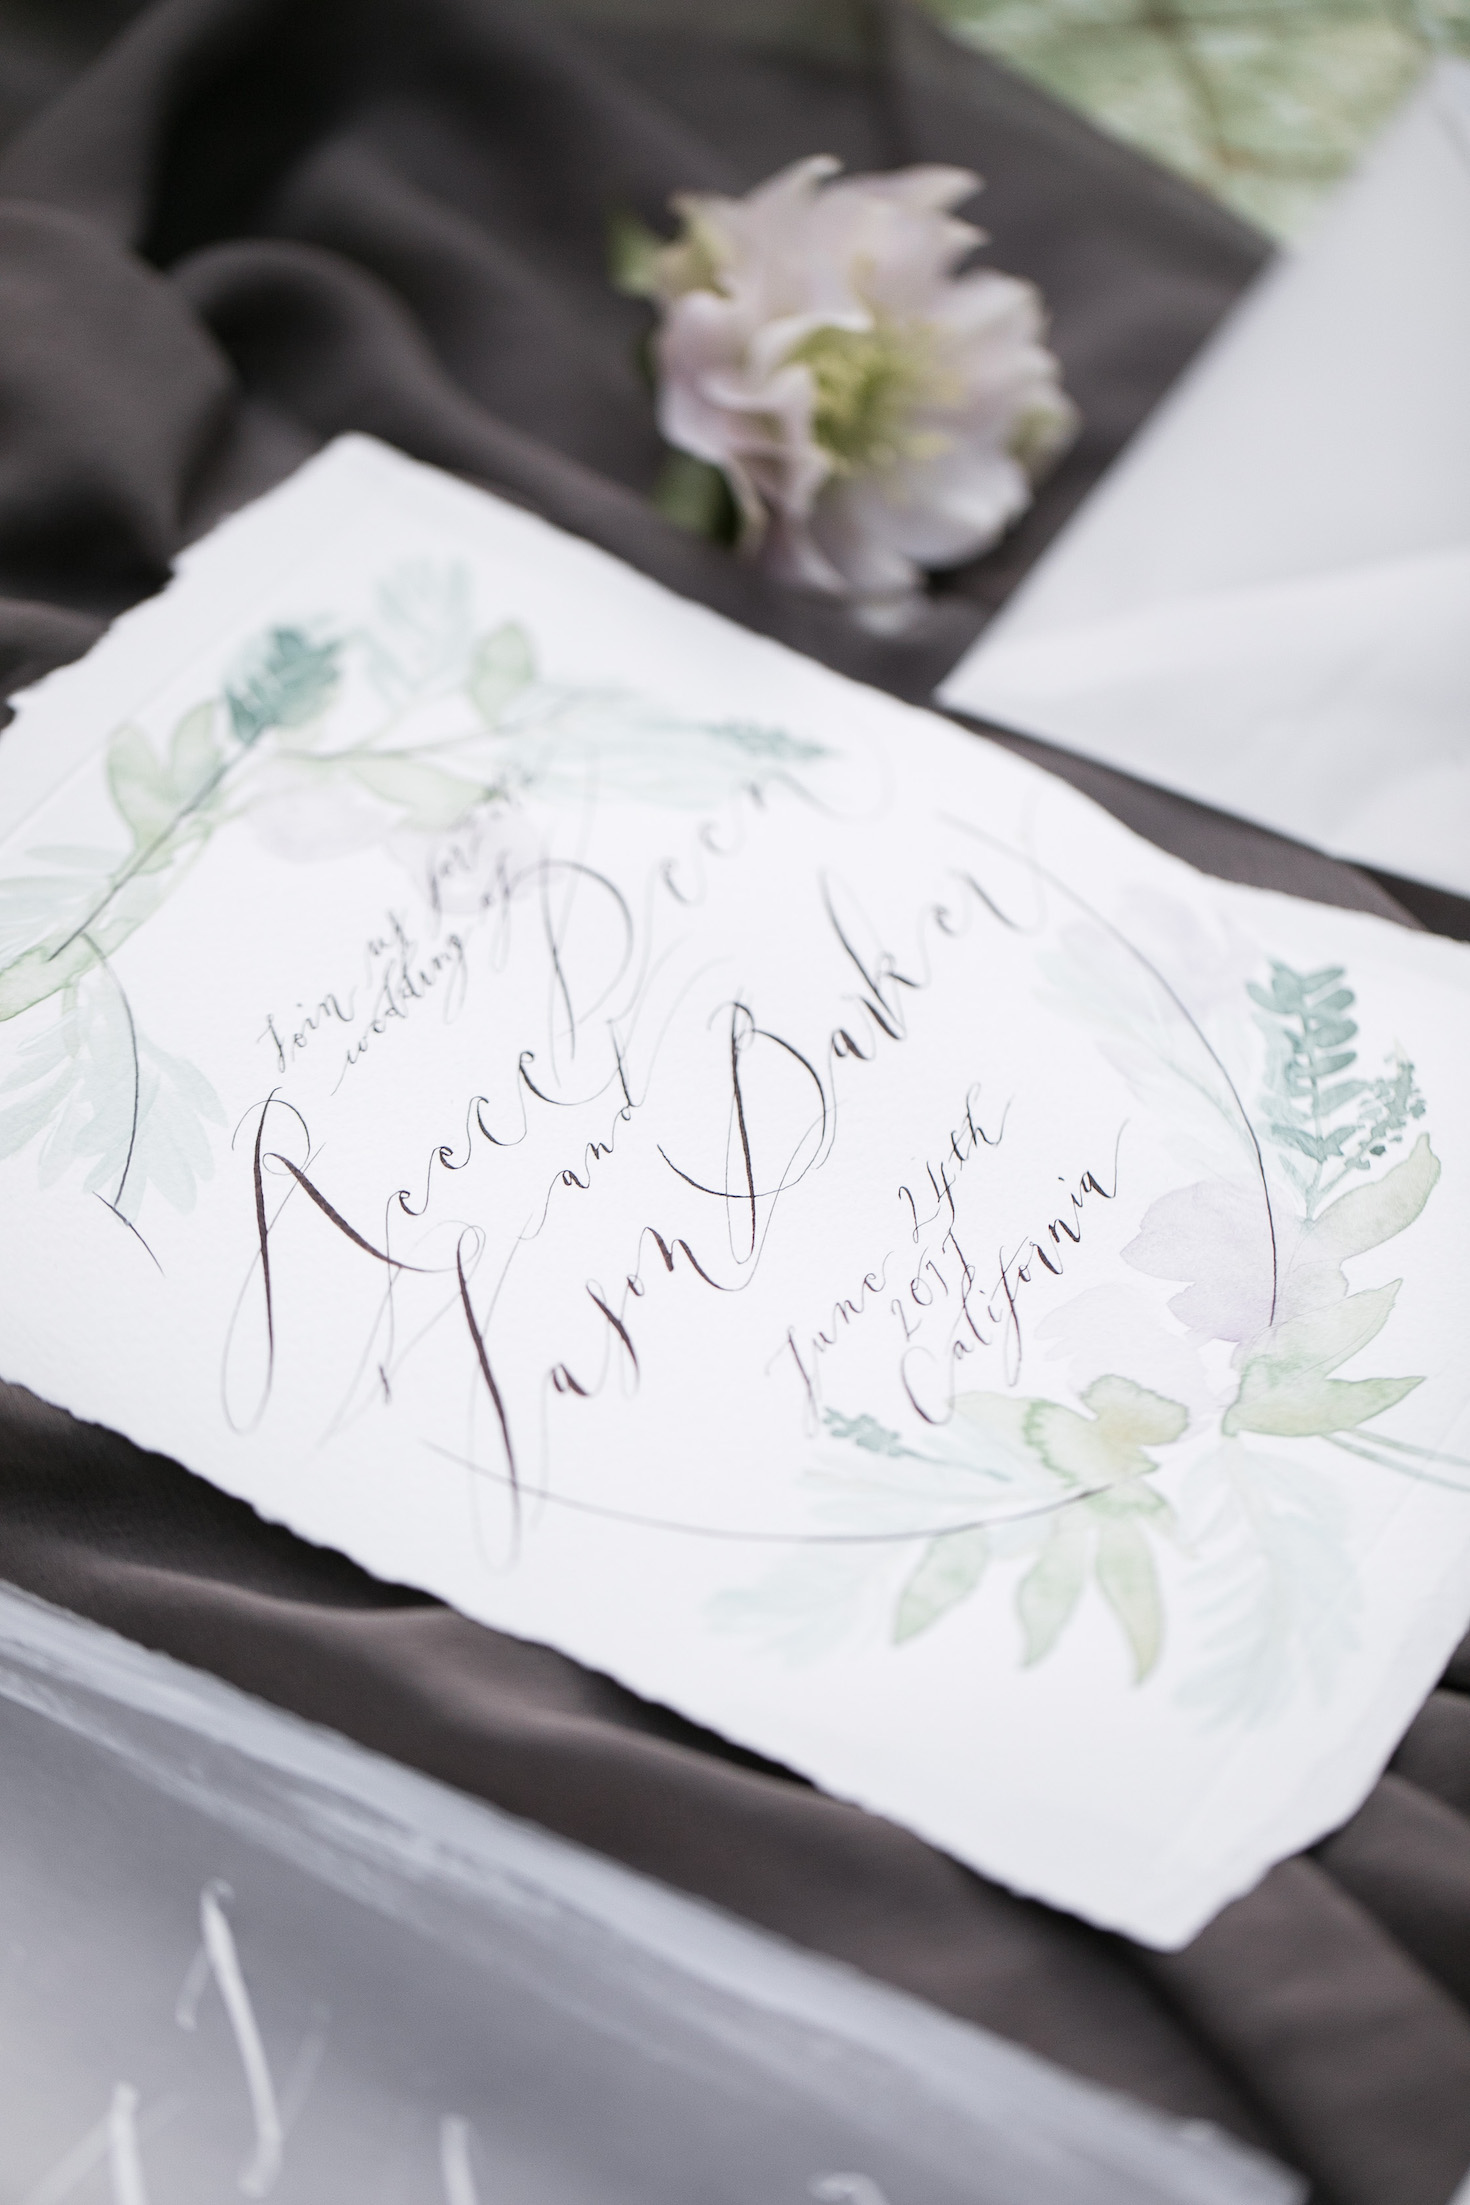 Wedding stationery for a wedding weekend